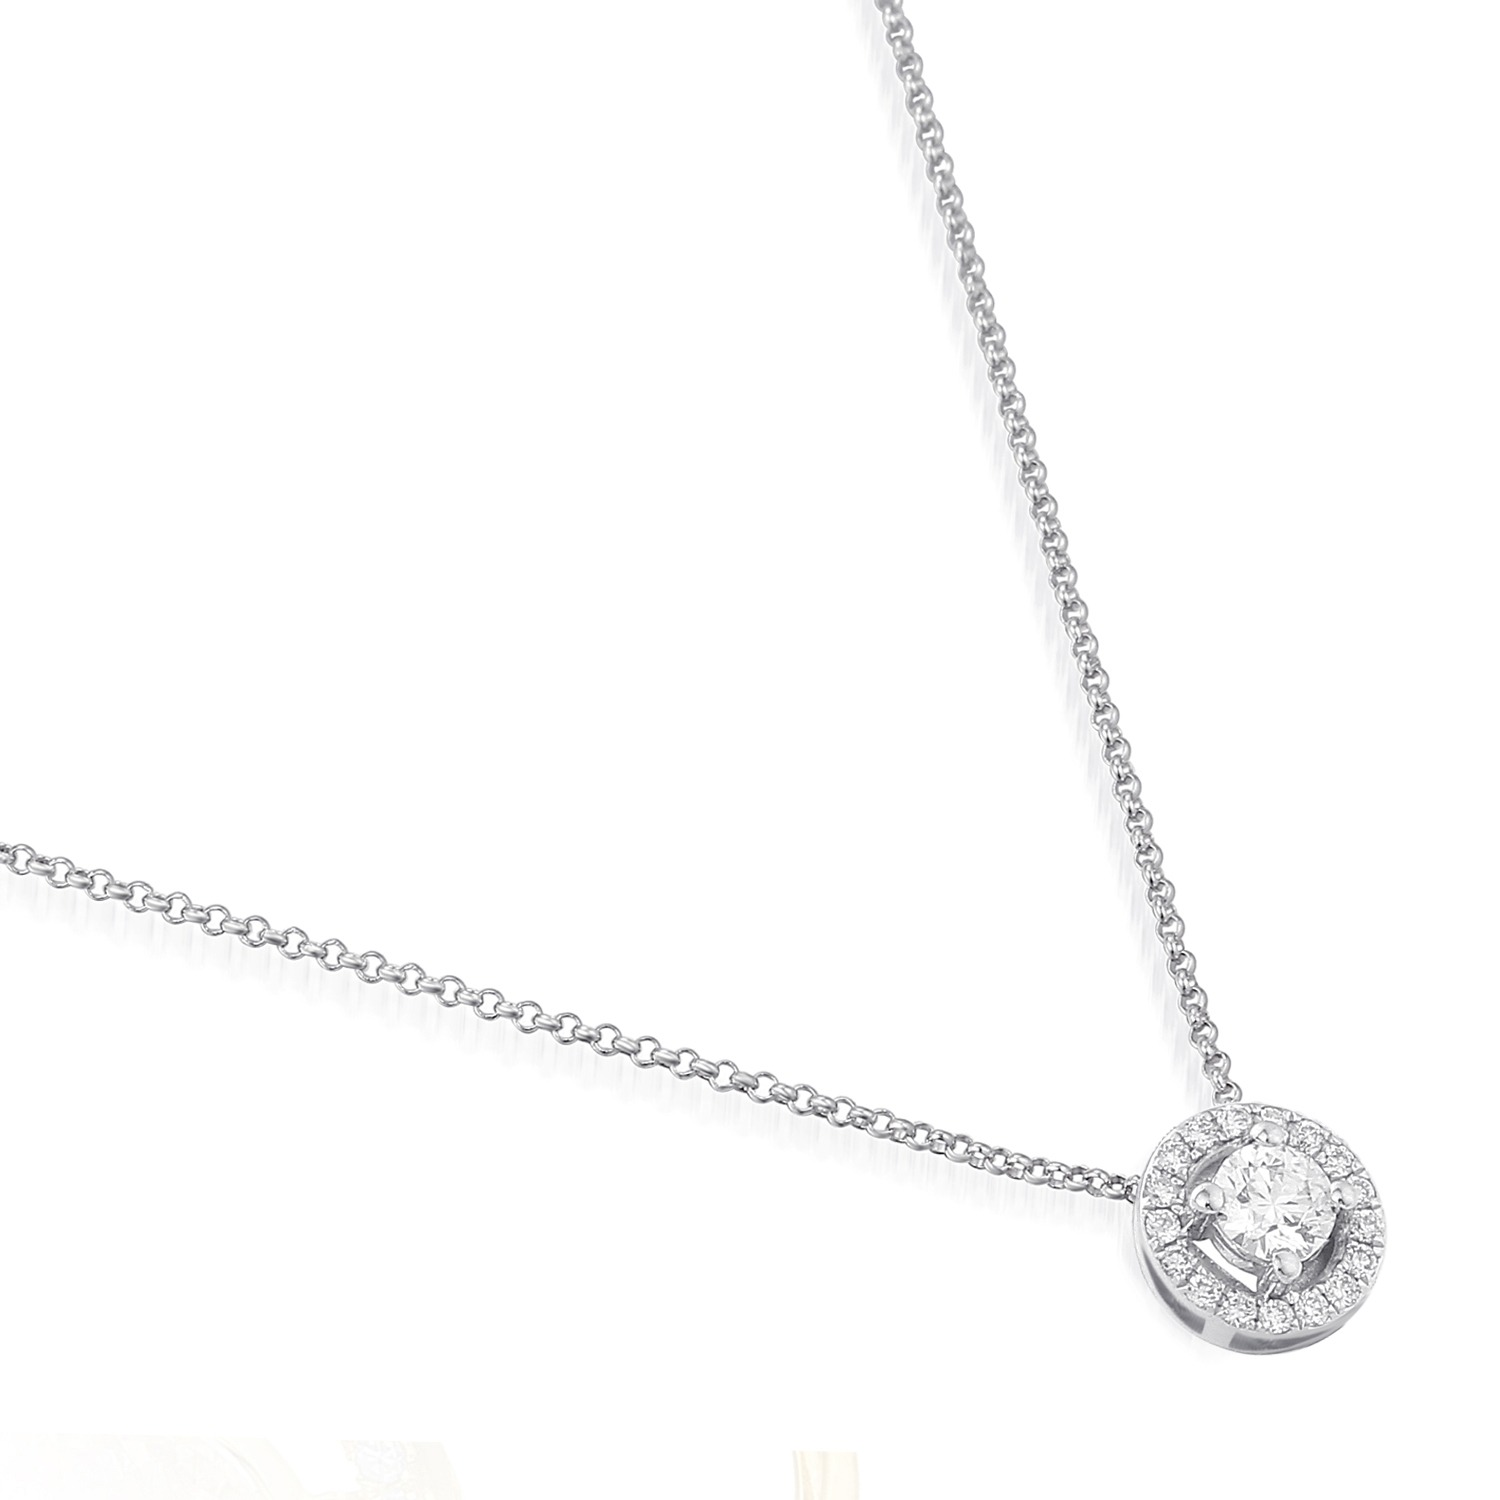 halo q necklaces twt ct in gold rose r necklace da brilliant diamond round cushion pendant